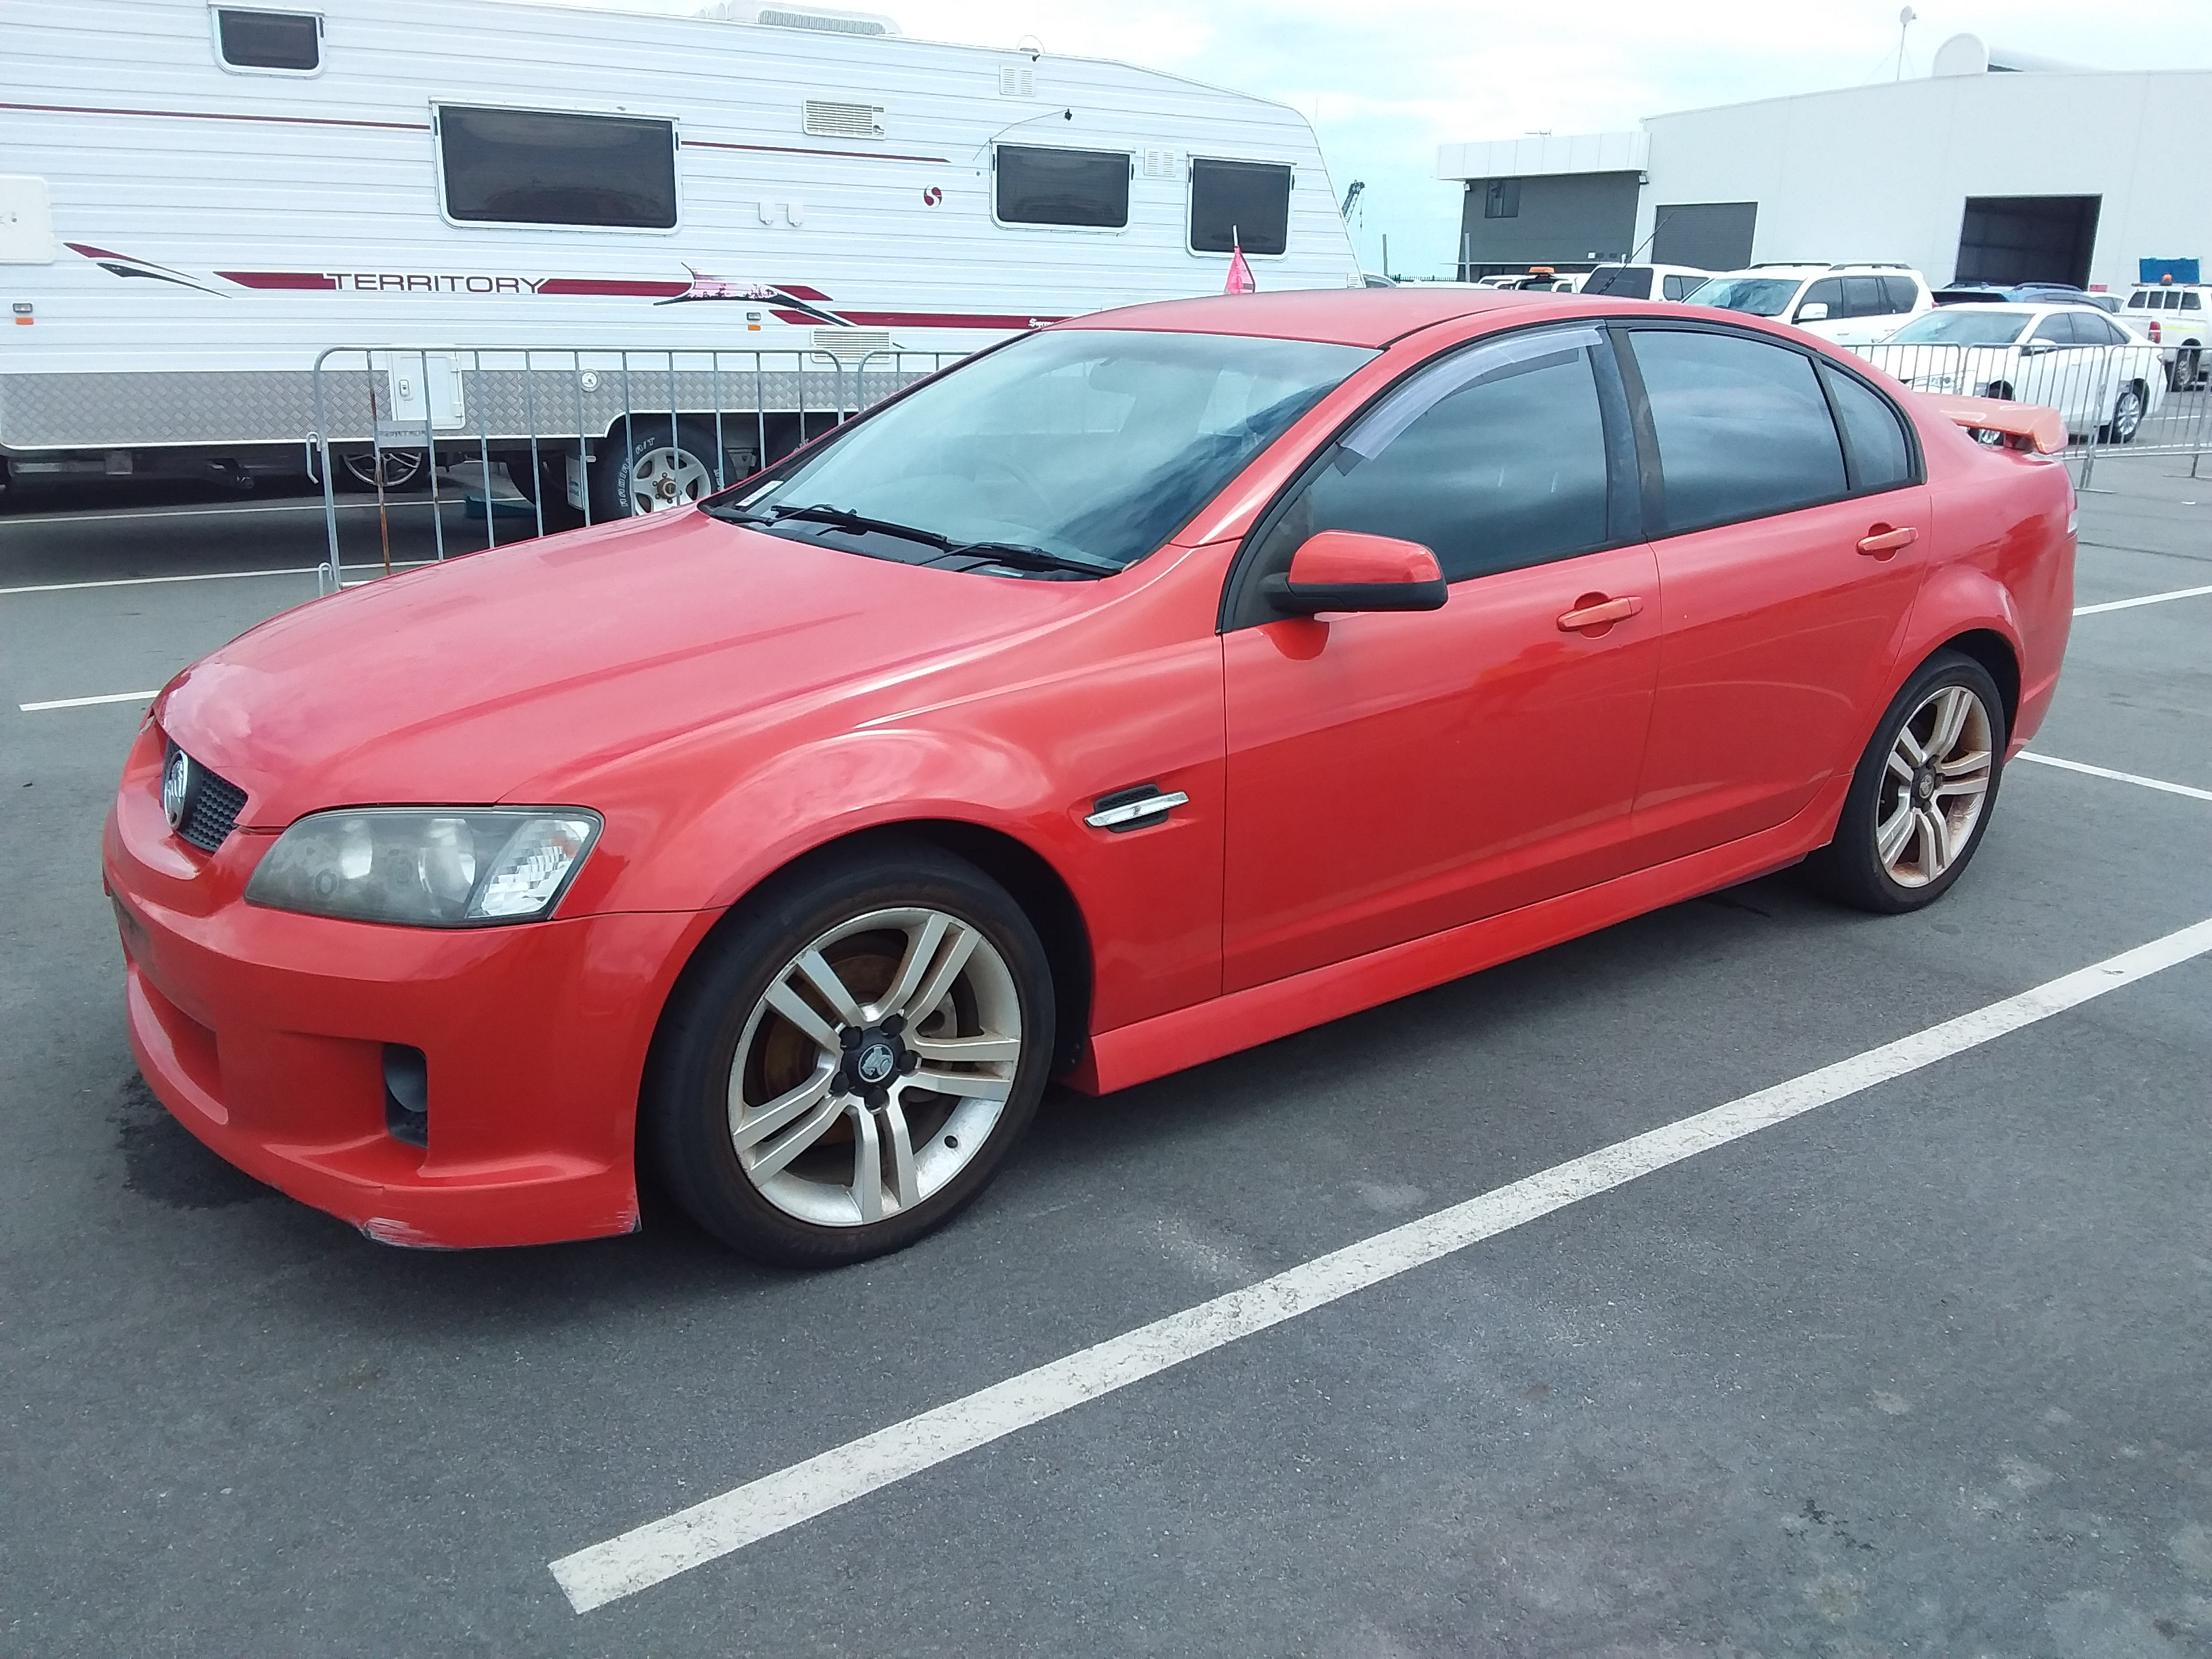 2007 Holden VE Commodore SV6 Automatic Sedan